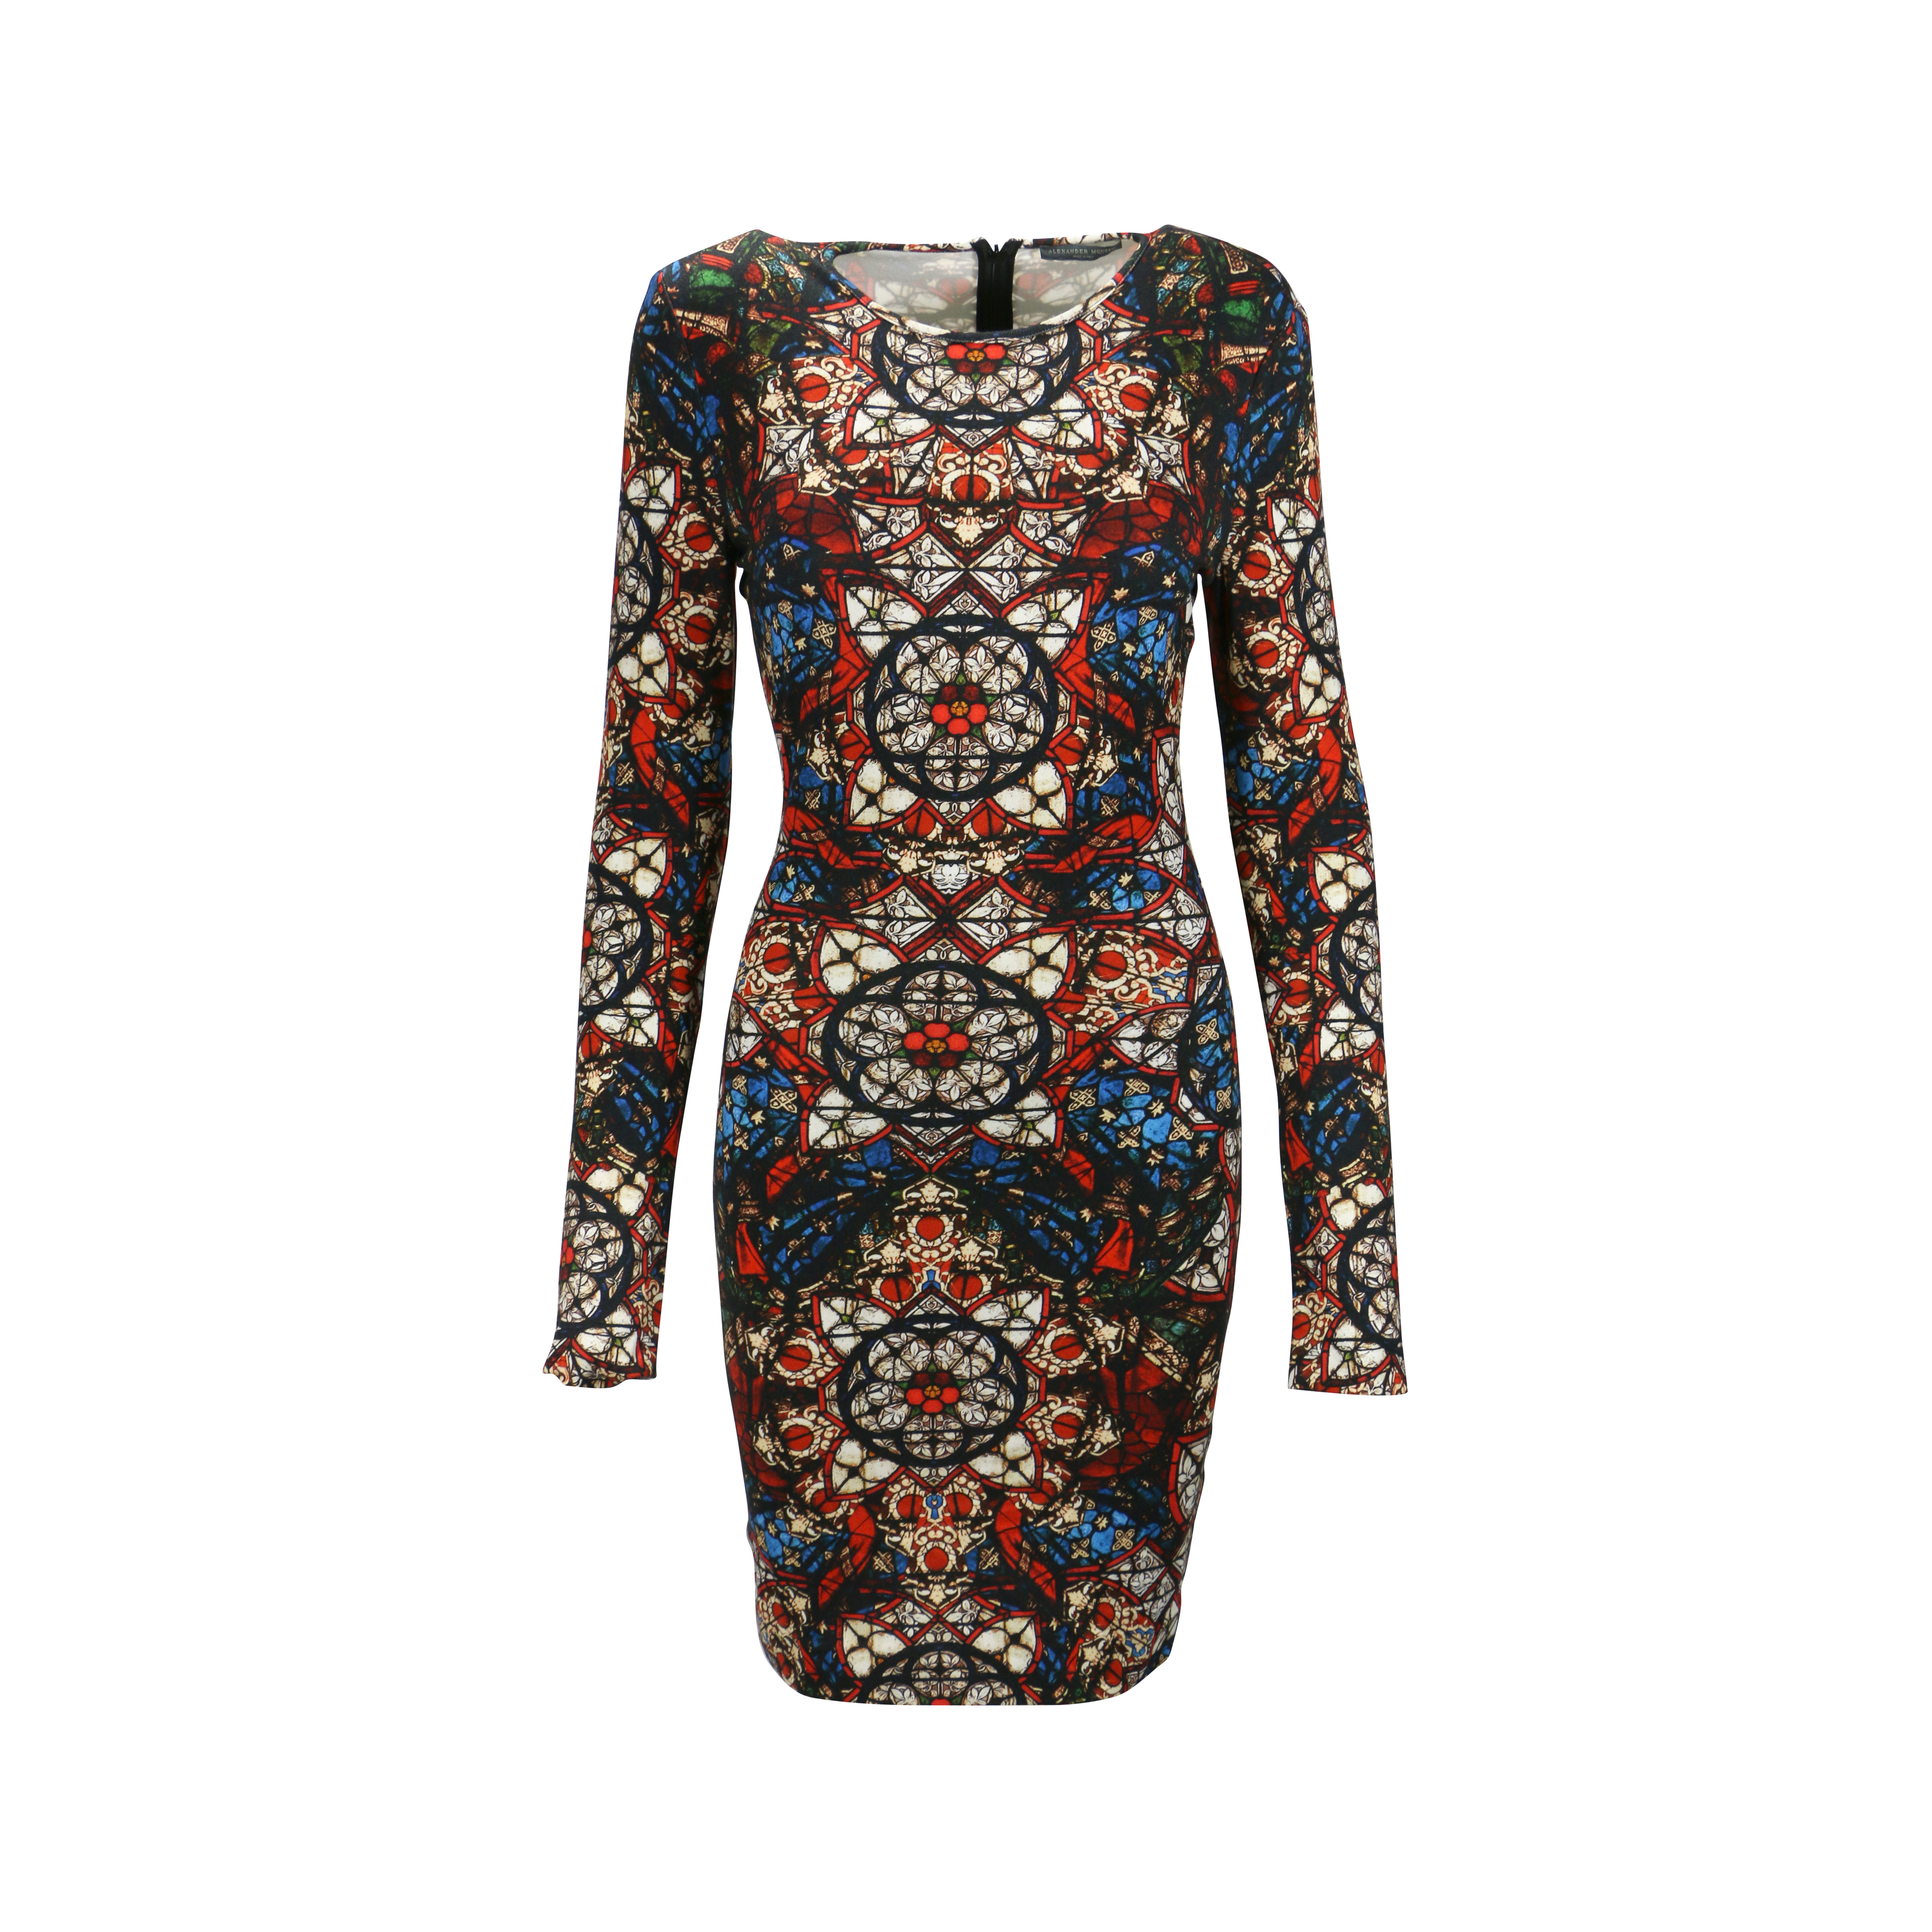 a1ad8270456 Authentic Second Hand Alexander McQueen Stained Glass Jersey Stretch Dress  (PSS-093-00022)